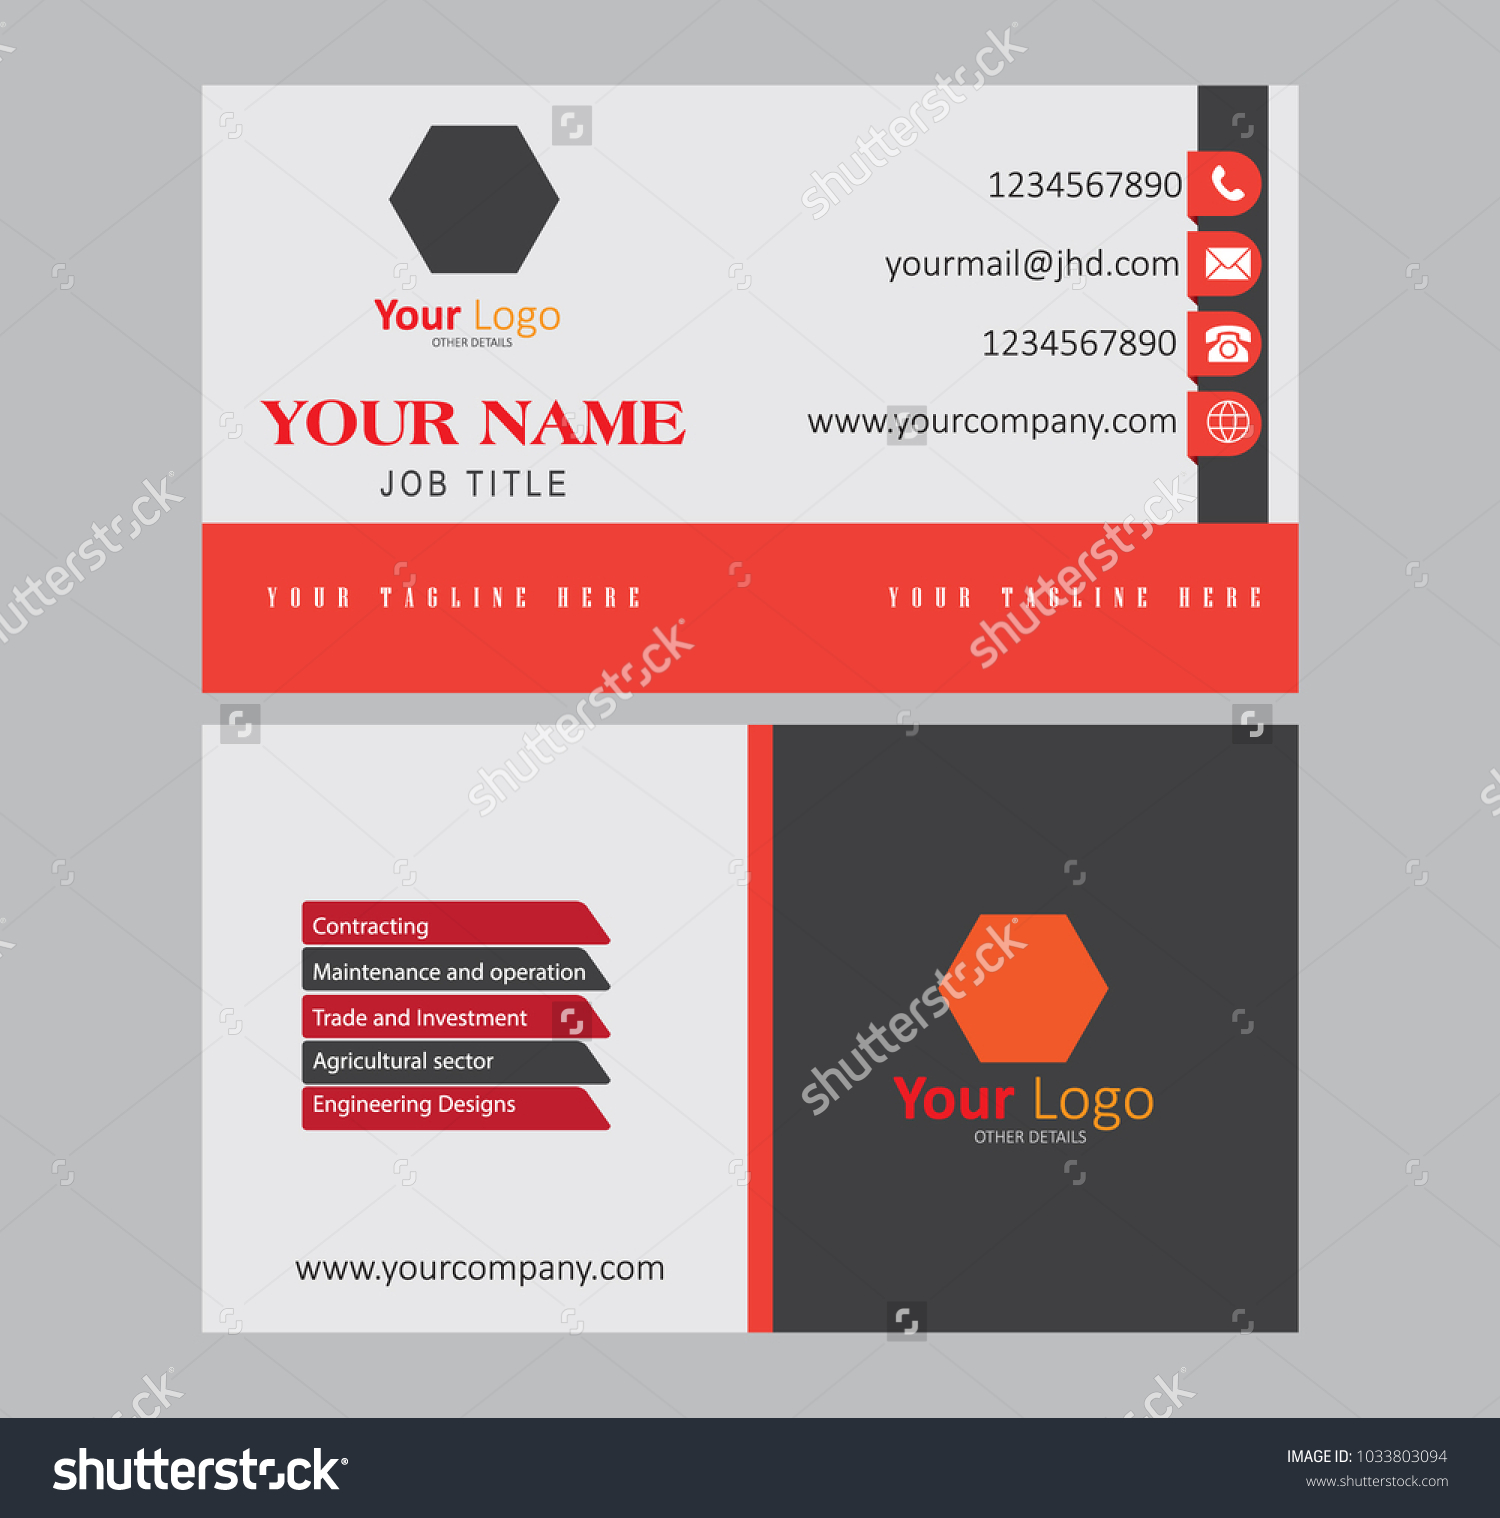 Creative Clean Abstract Business Card Designs Stock Vector ...